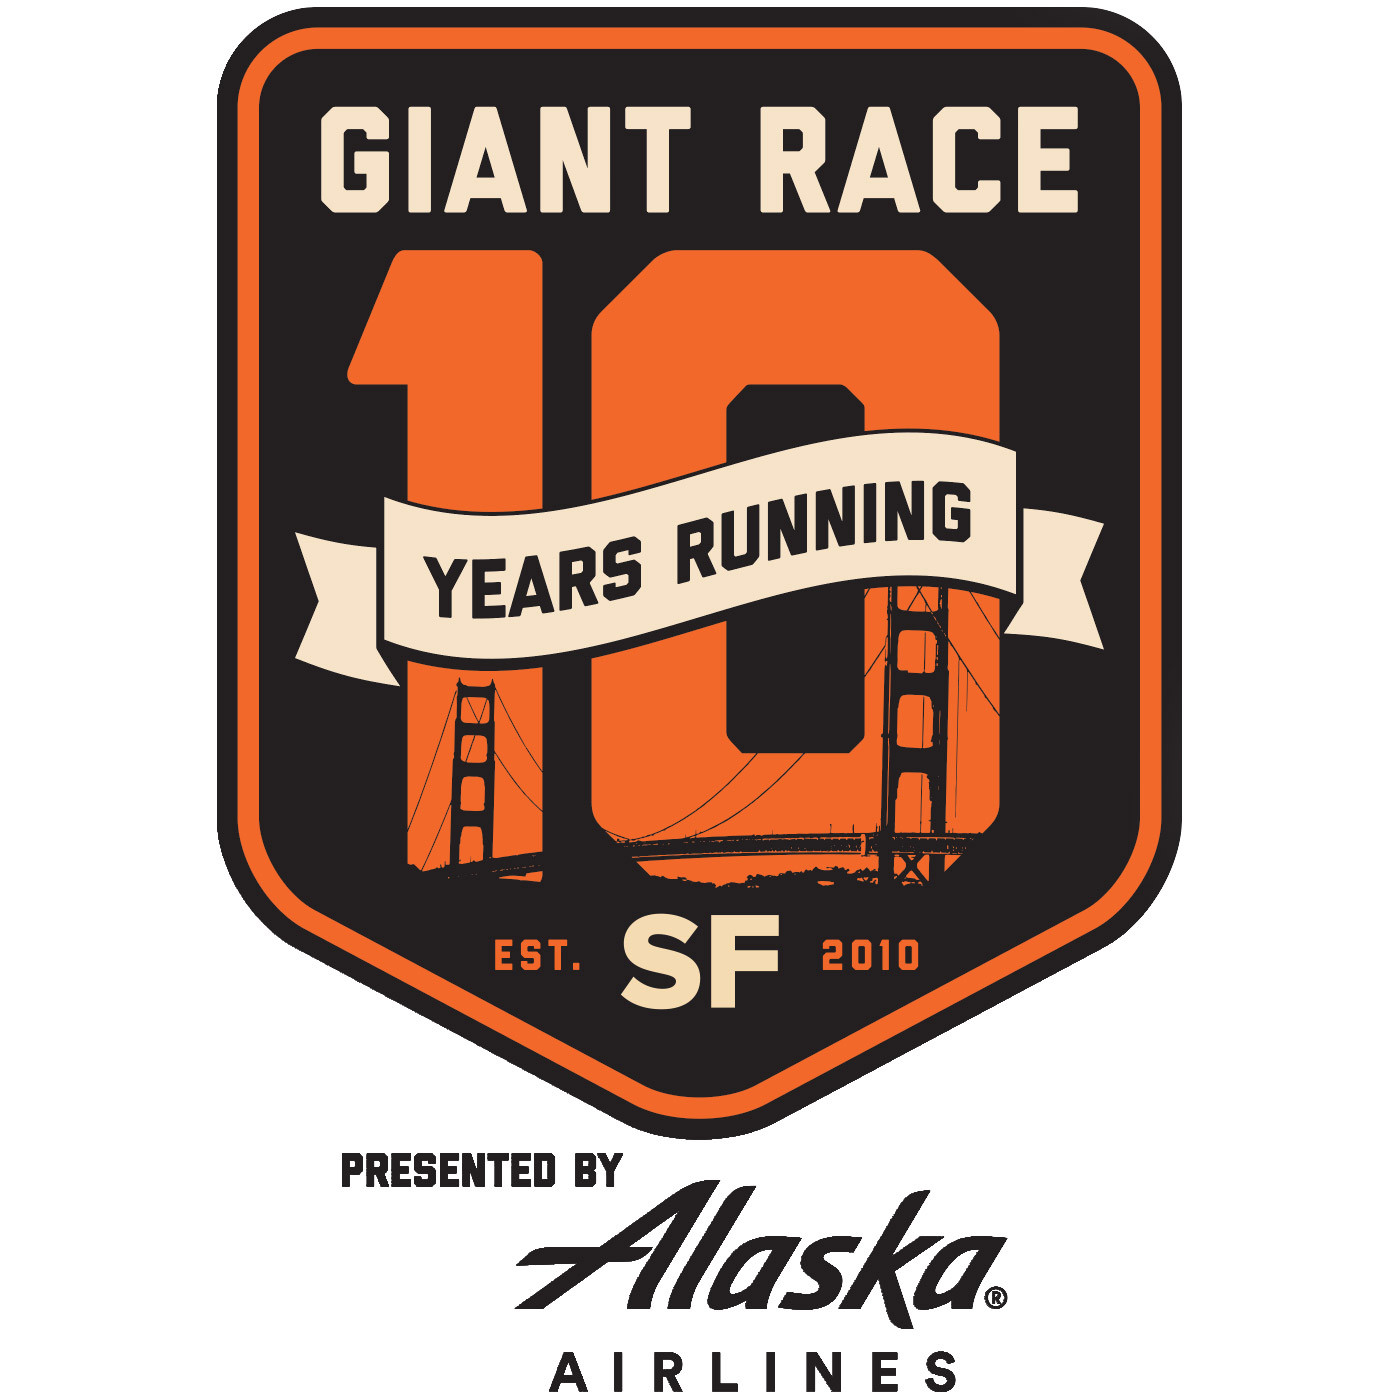 76277be14be 2019 San Francisco Giant Race Presented By Alaska Airlines